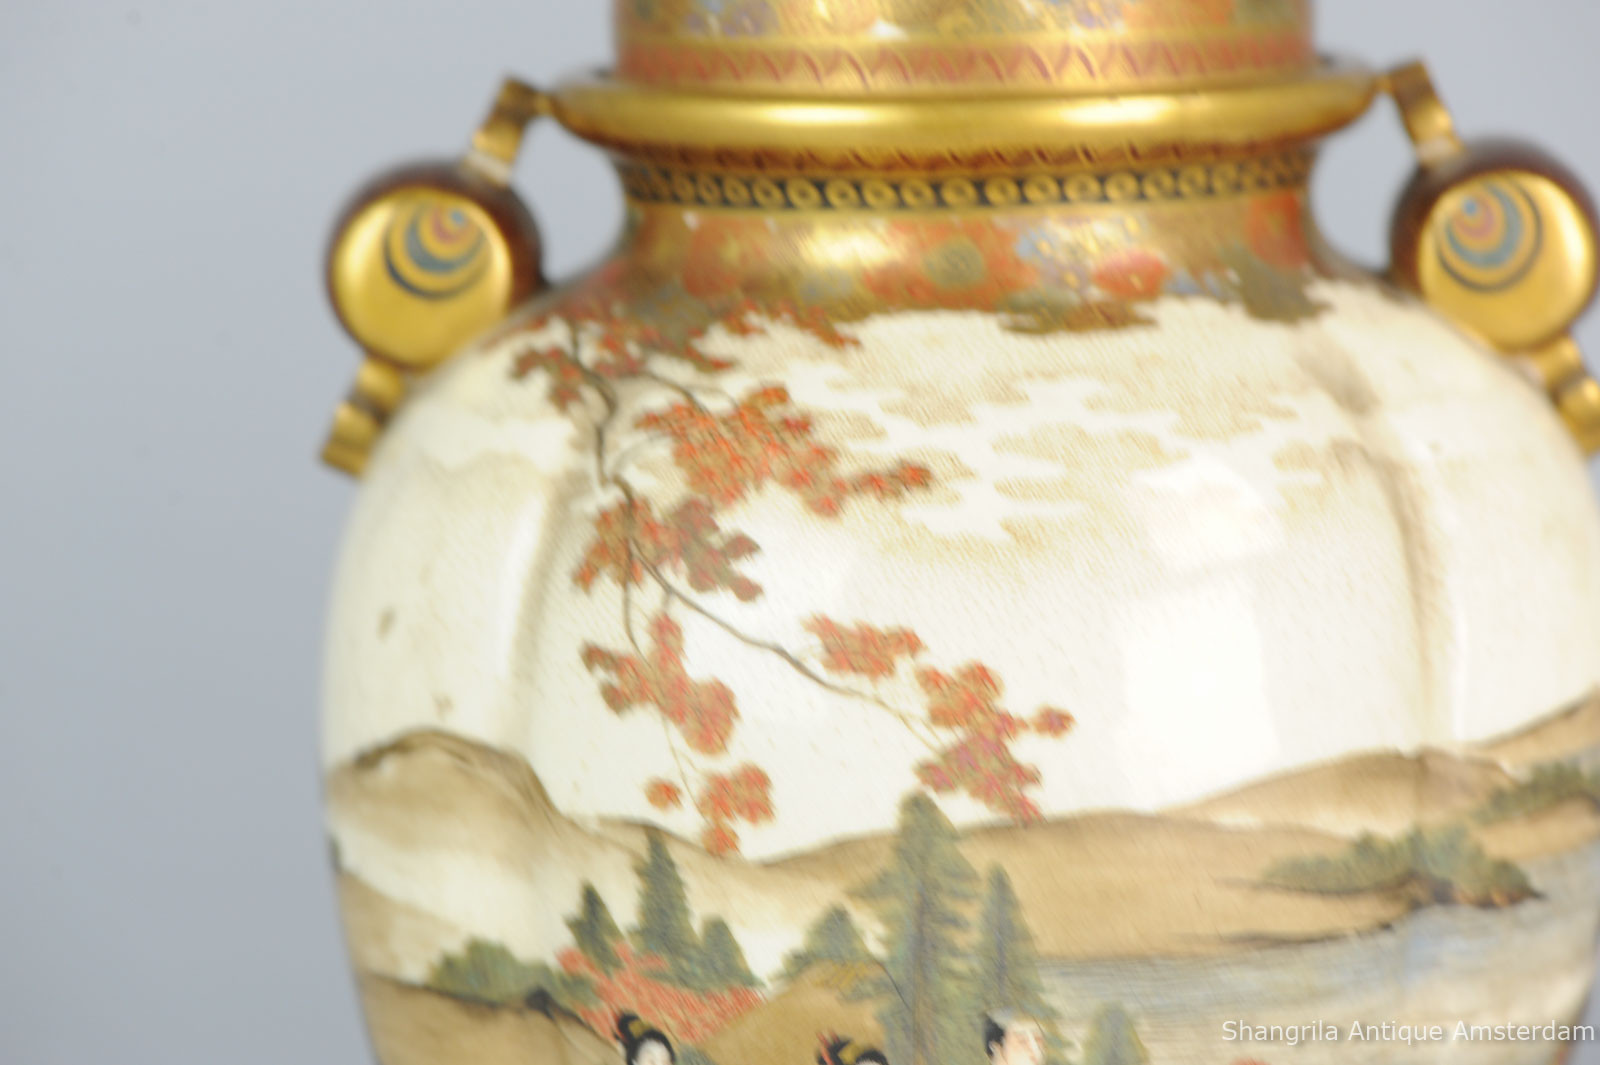 Satsuma Porcelain Vase Of Shangrila Antique Inside sold